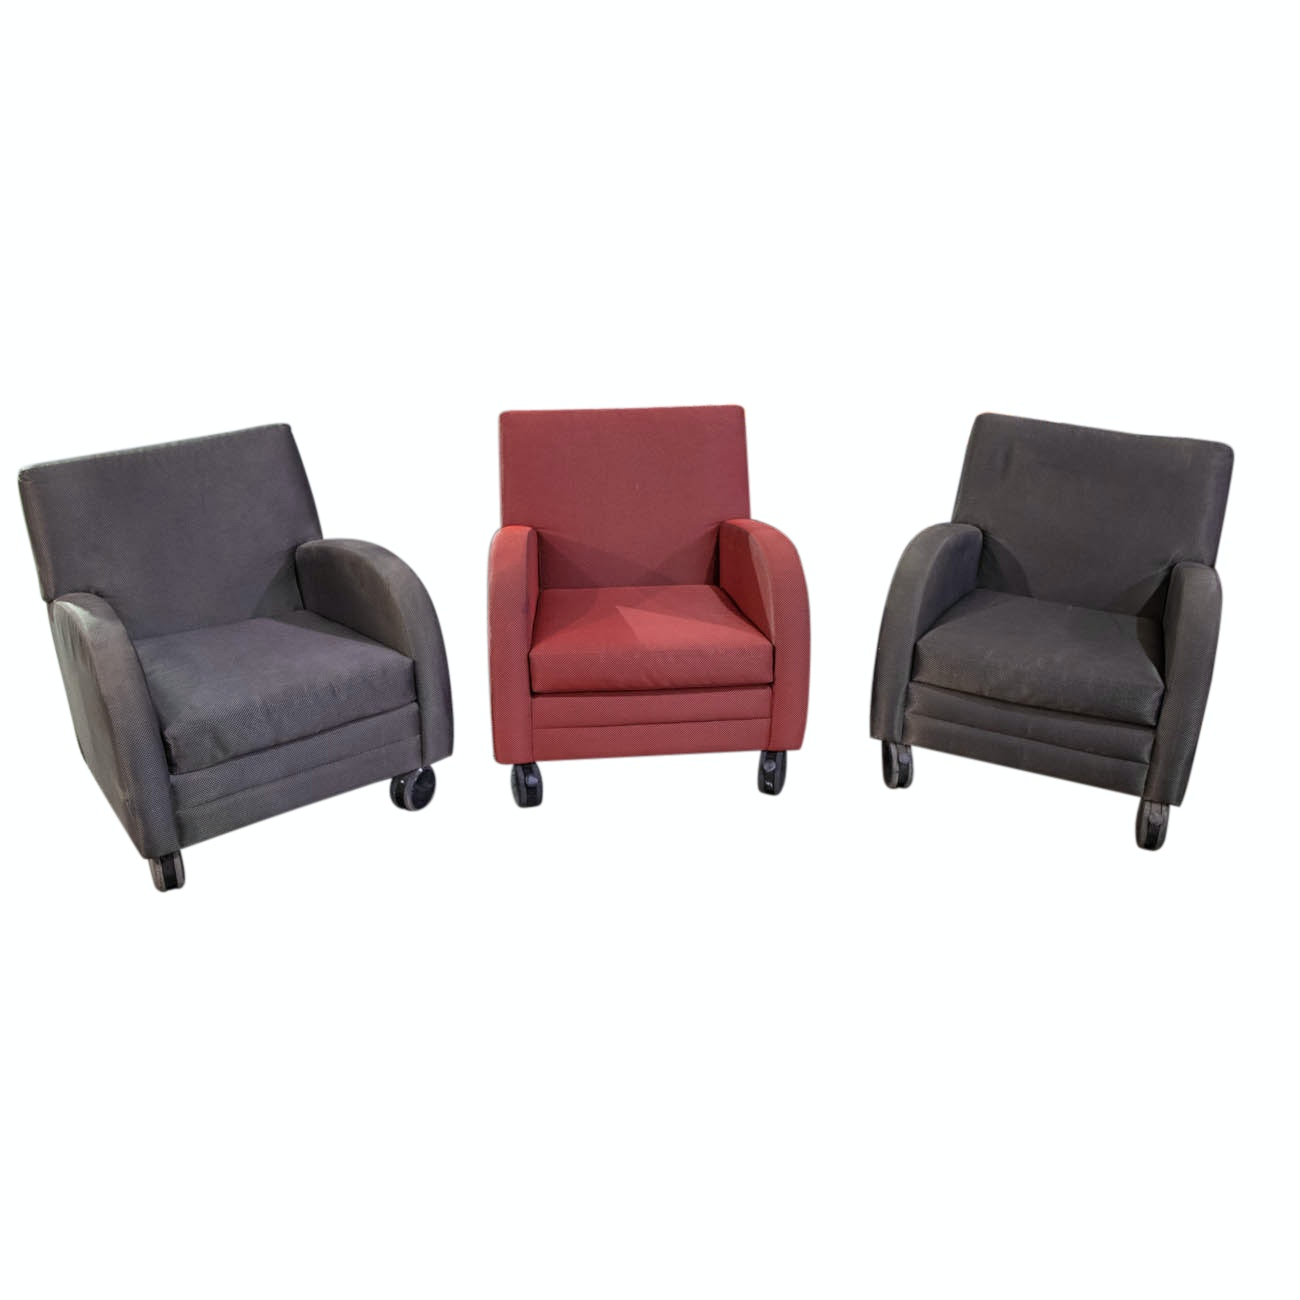 Three Modern Style Upholstered Chairs From Great American Ball Park COA